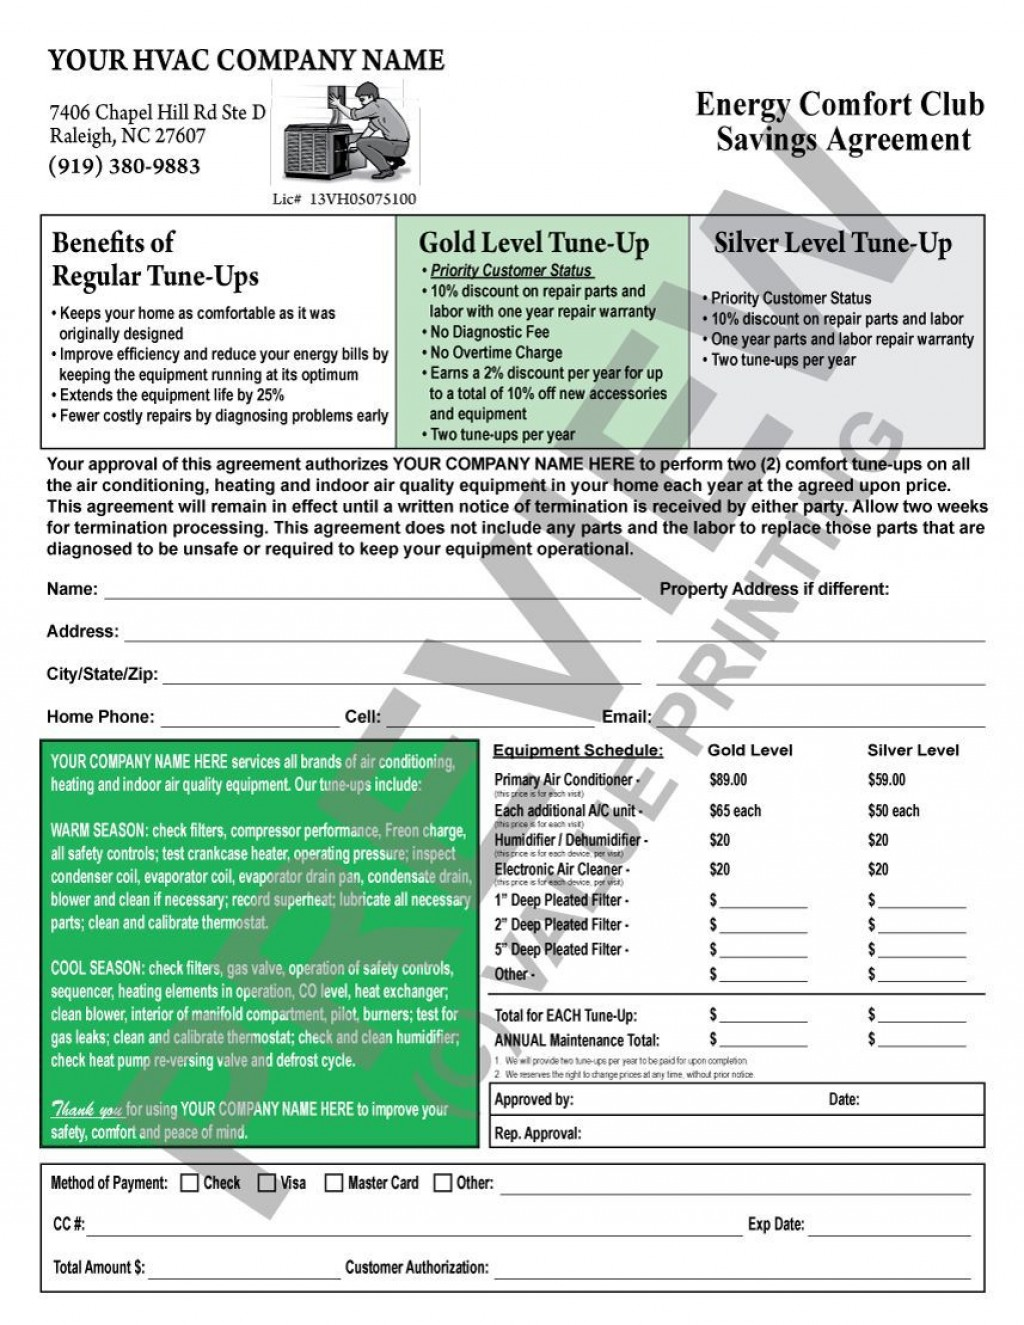 003 Unusual Hvac Service Agreement Template Picture  Contract Form Maintenance PdfLarge